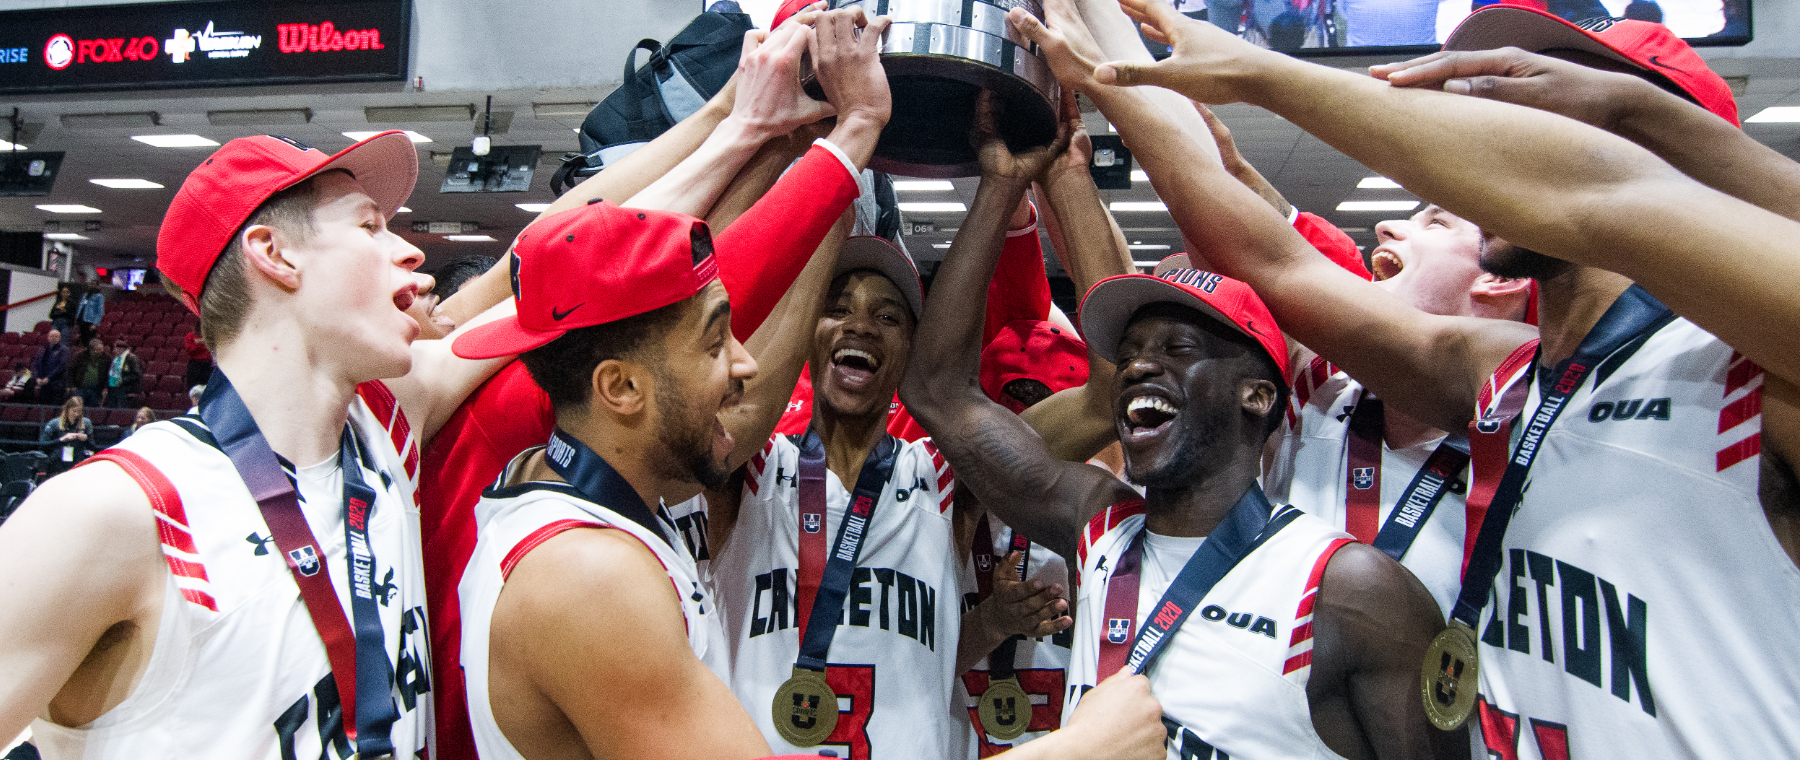 Carleton Ravens win championship at Lansdowne event that combines men's and women's finals